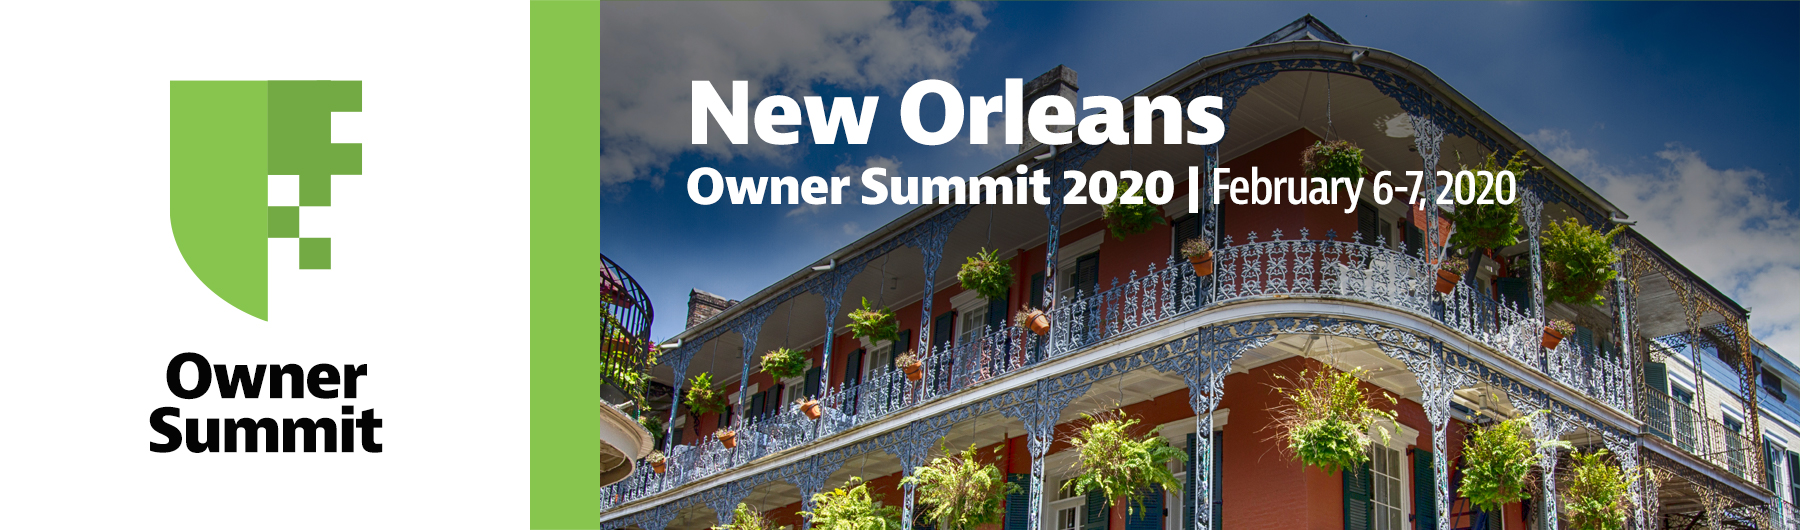 Owner Summit 2020 New Orleans